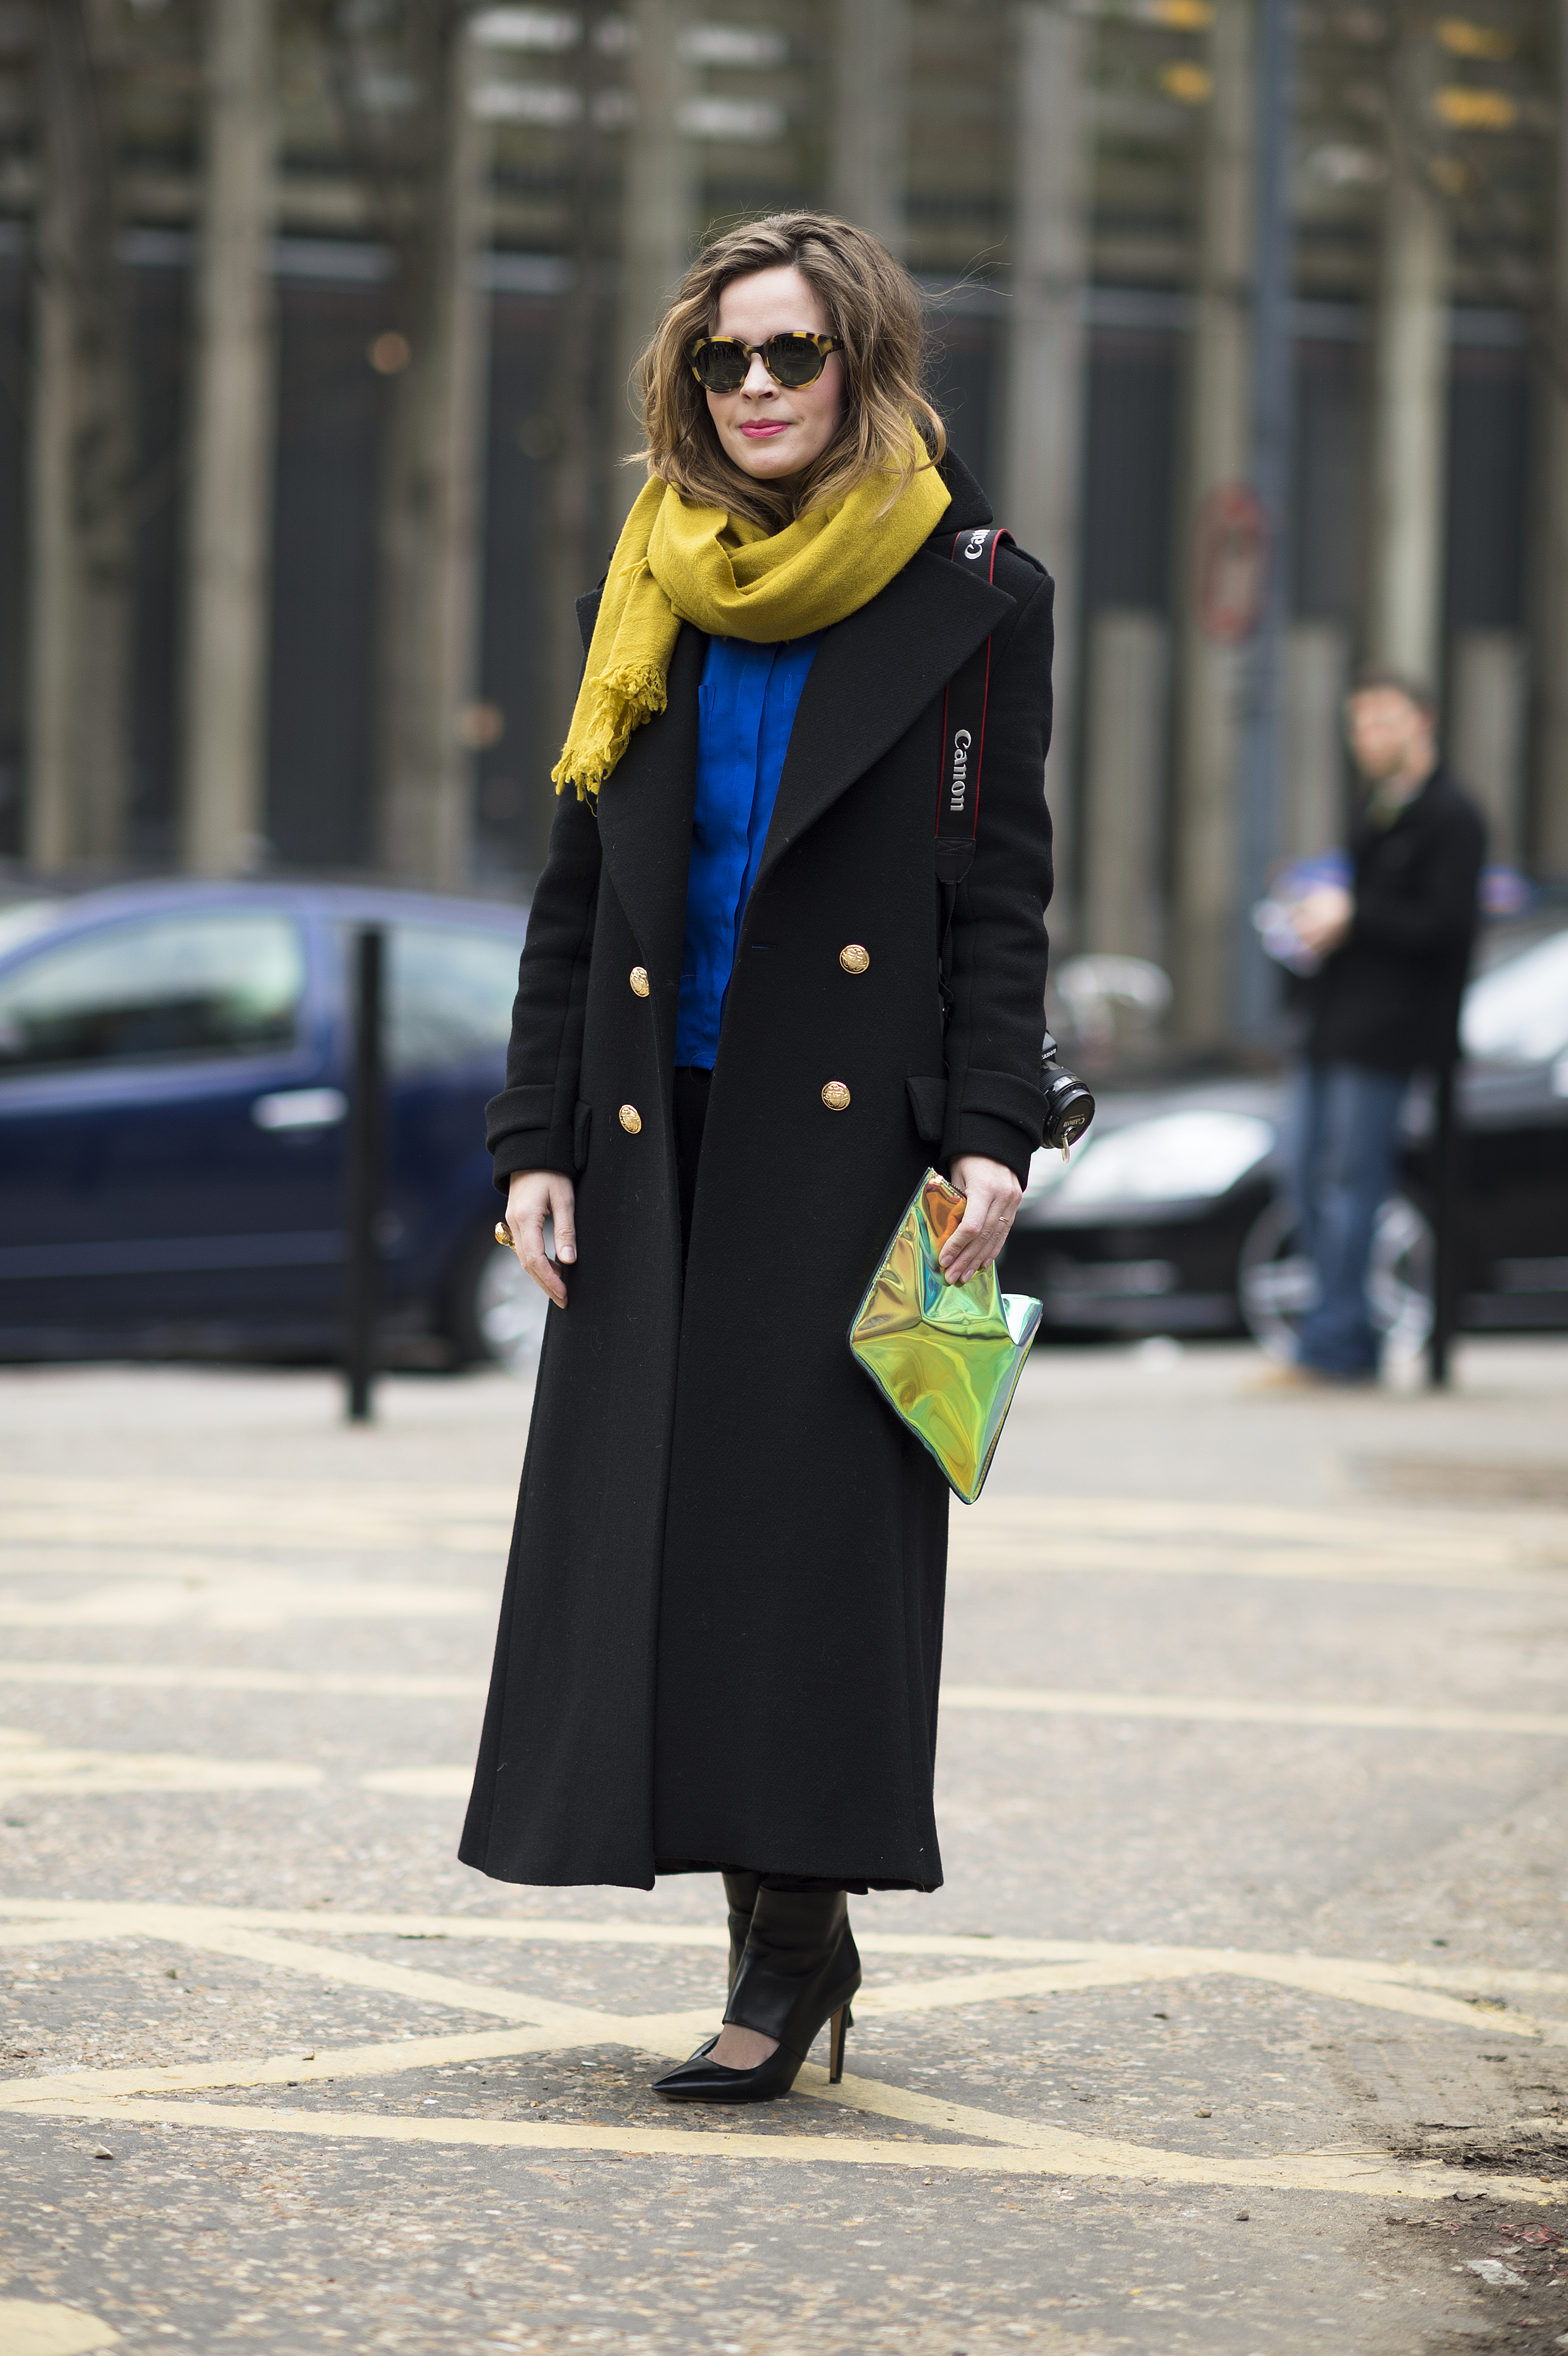 Pops-bright-color-against-full-length-military-style-coat-got